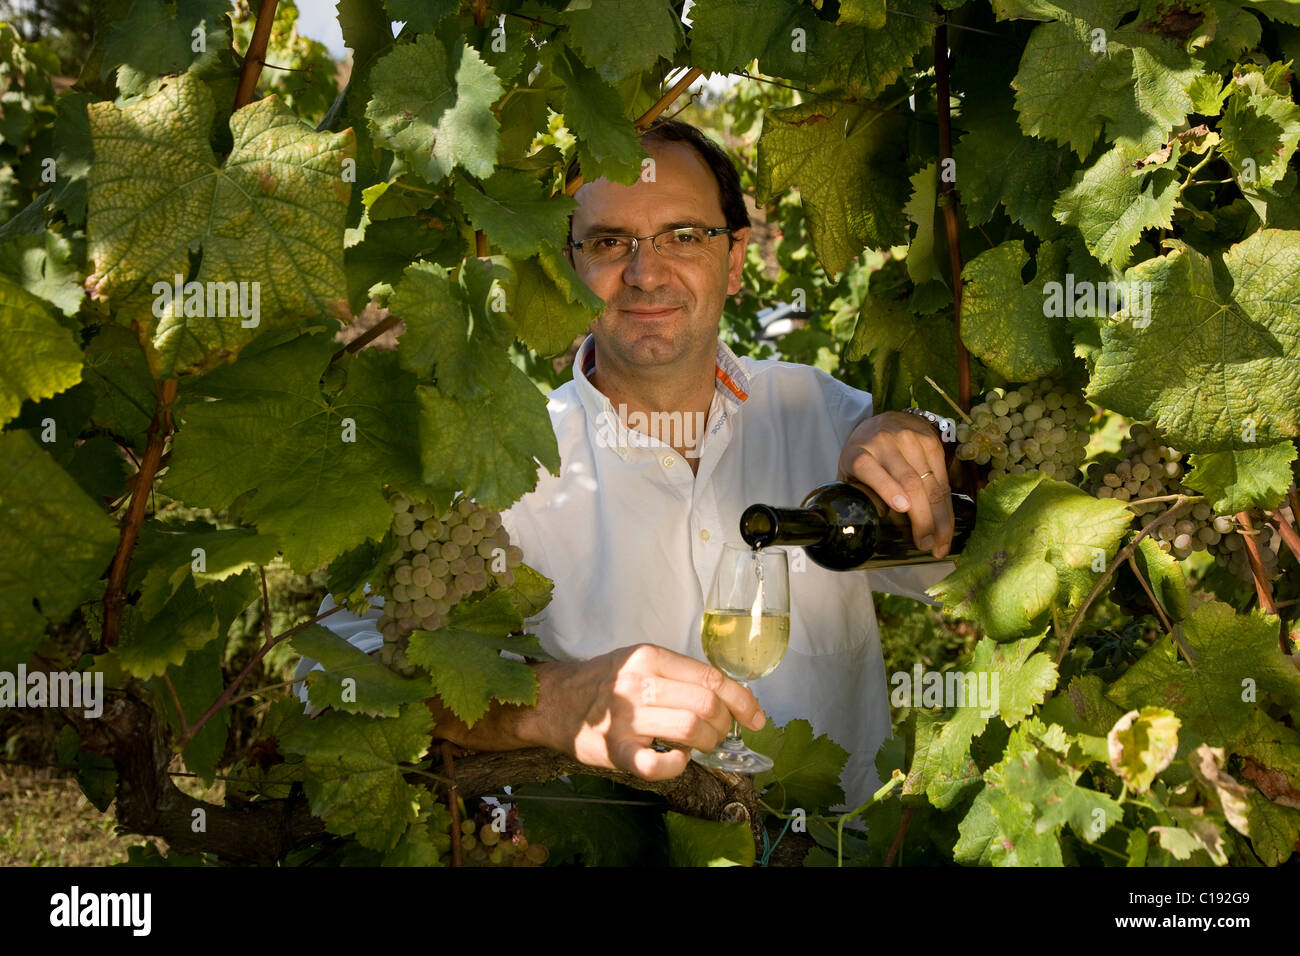 Oenologist Jorge Sousa Pinto in the vineyard of Quinta de Carapeços near the village of Amarante, Porto area - Stock Image